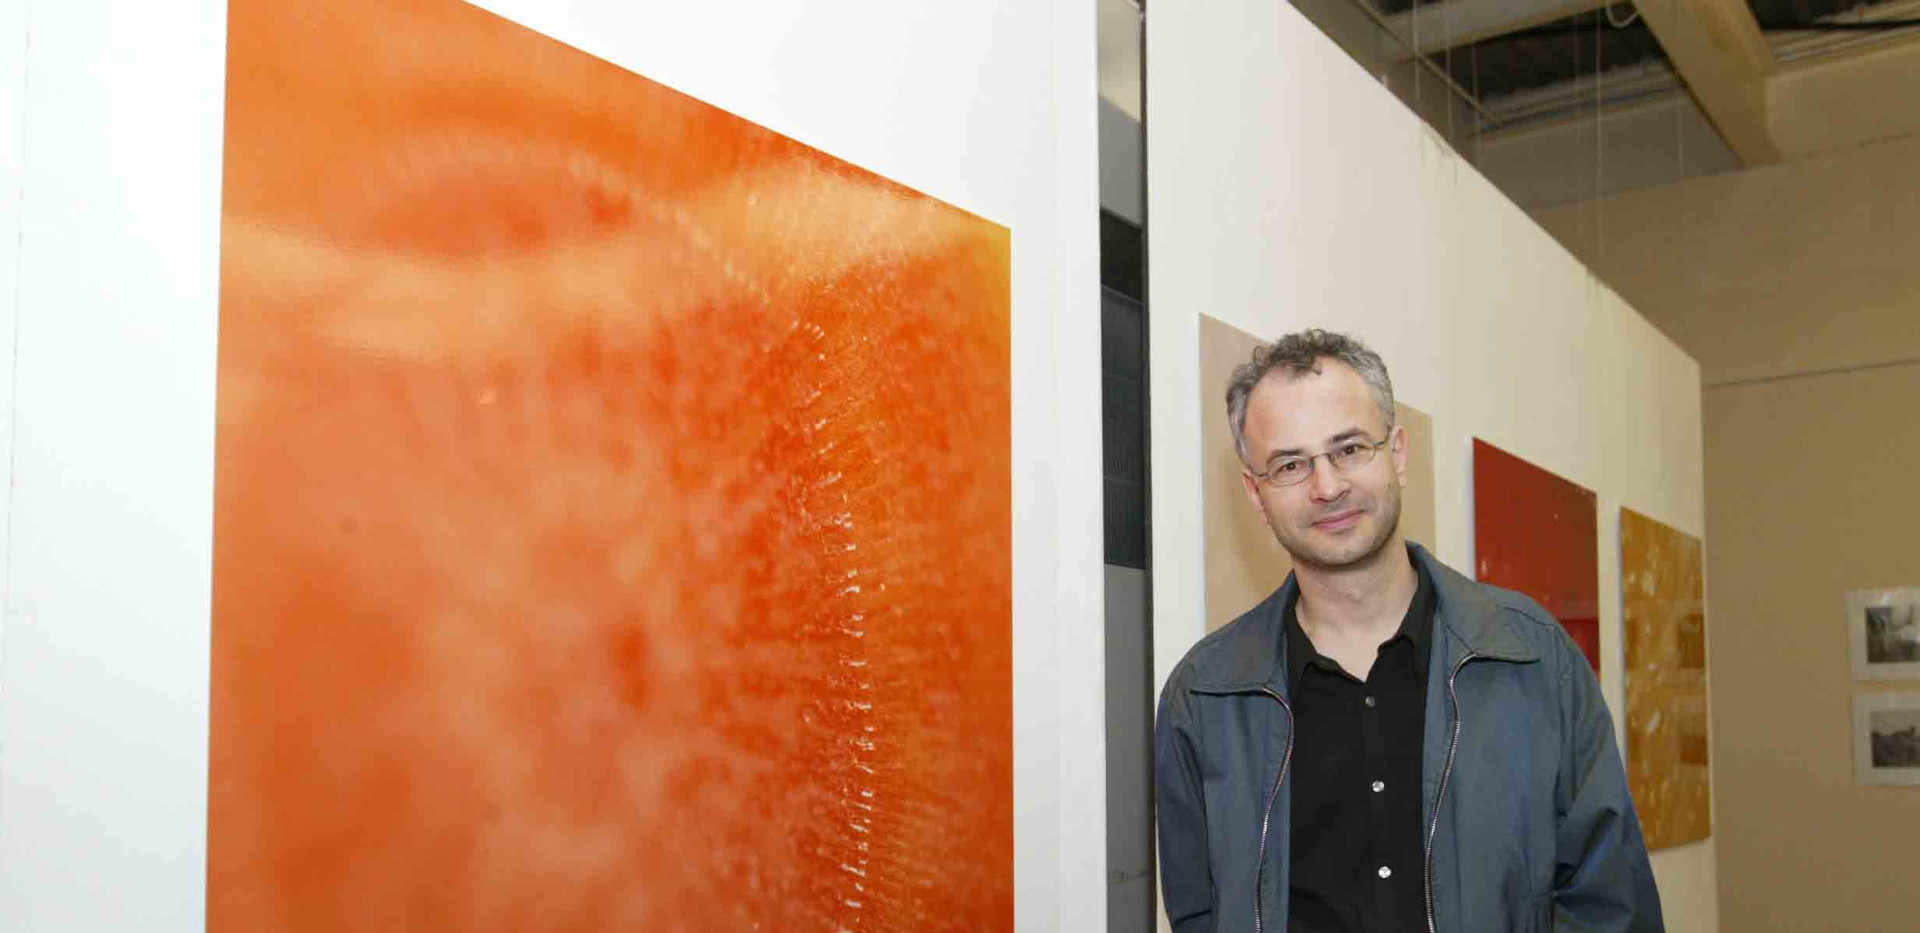 Andreas Zippler in front of his work